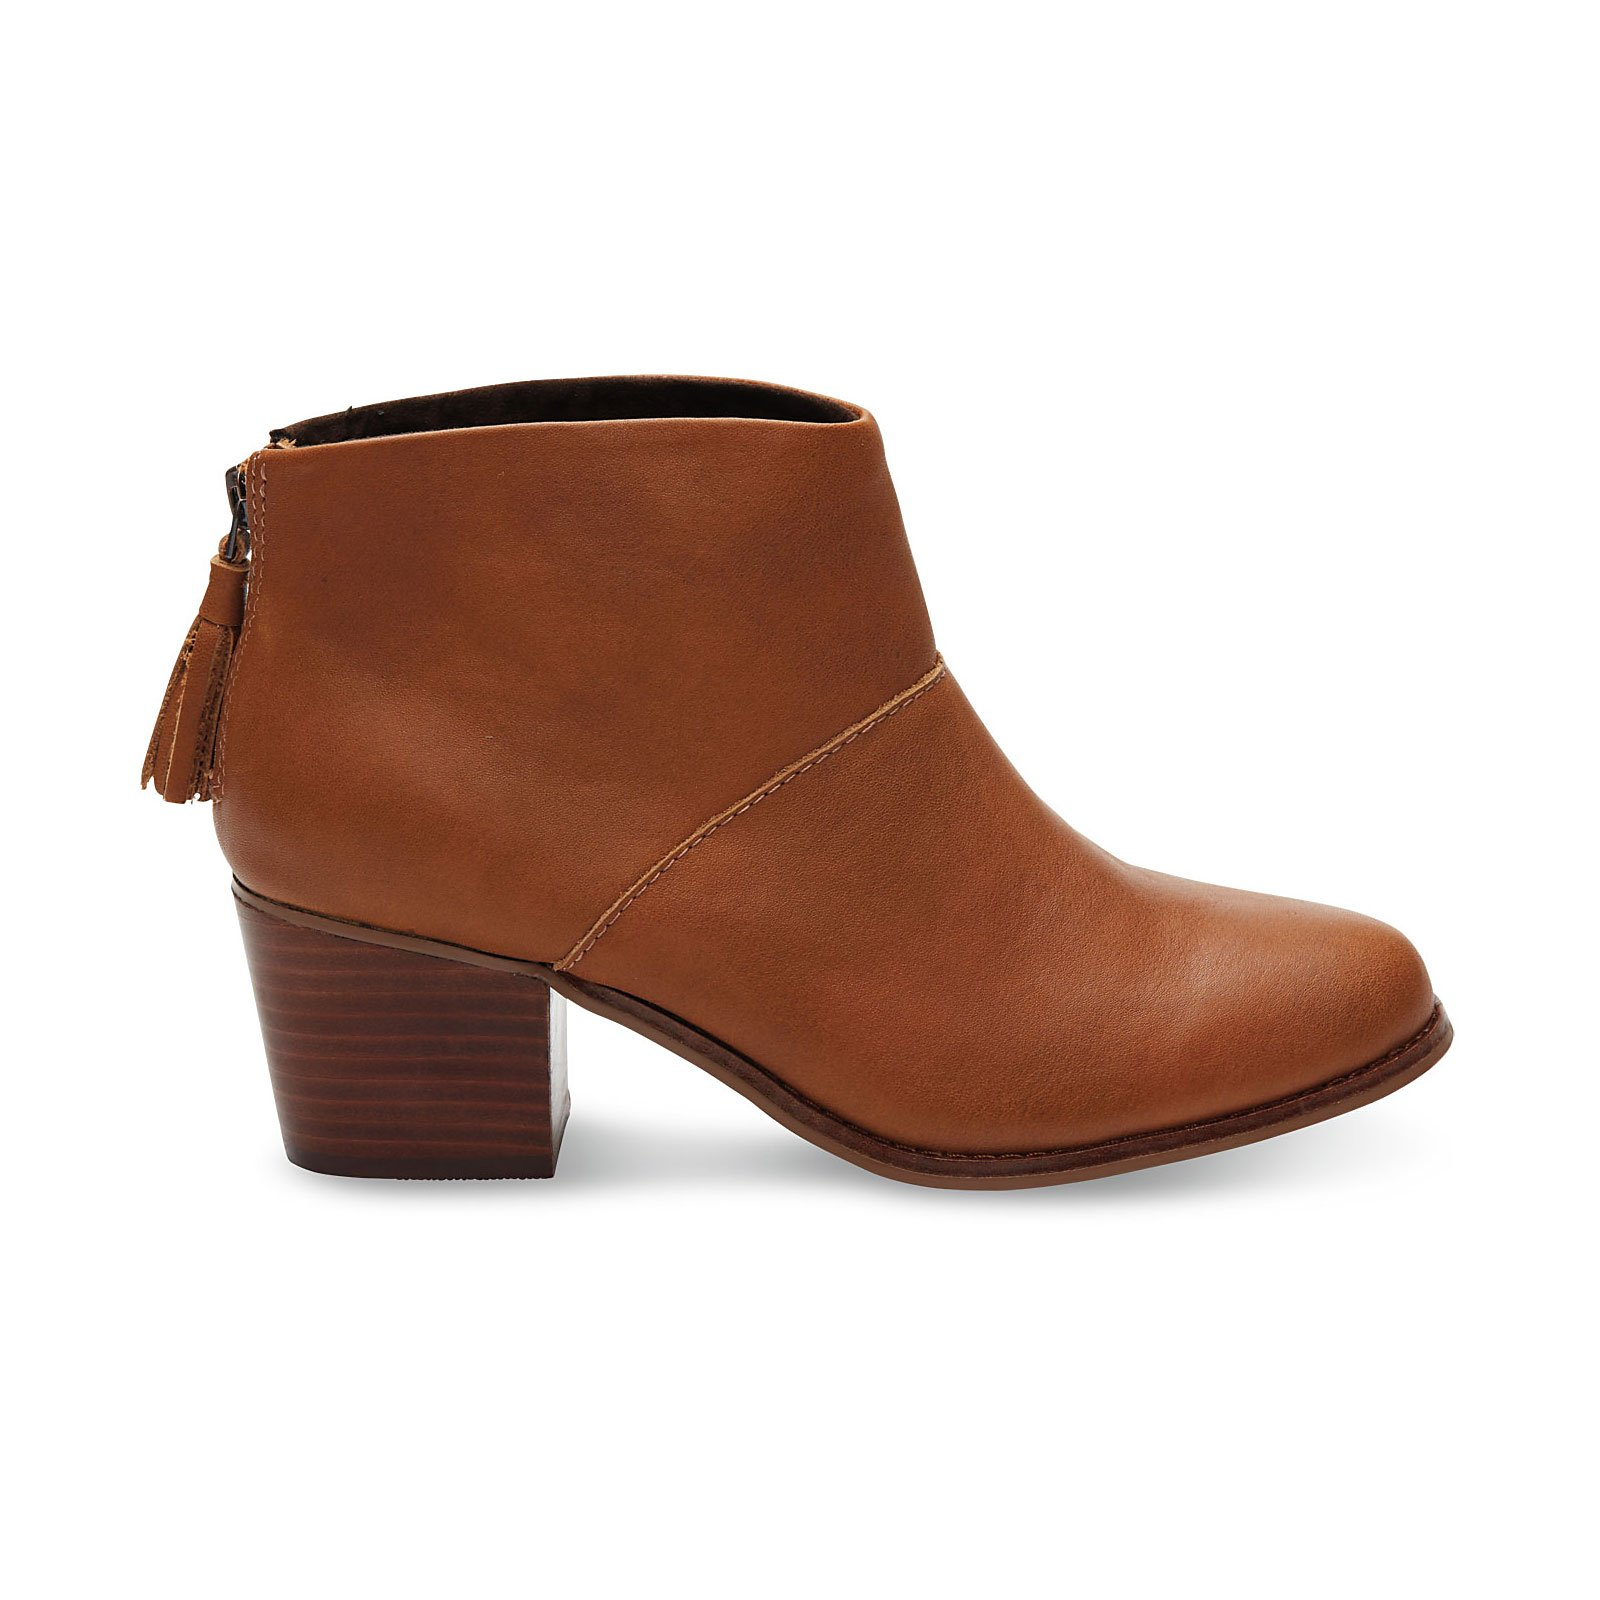 TOMS Women's Leila Bootie Warm Tan Leather 5 B US